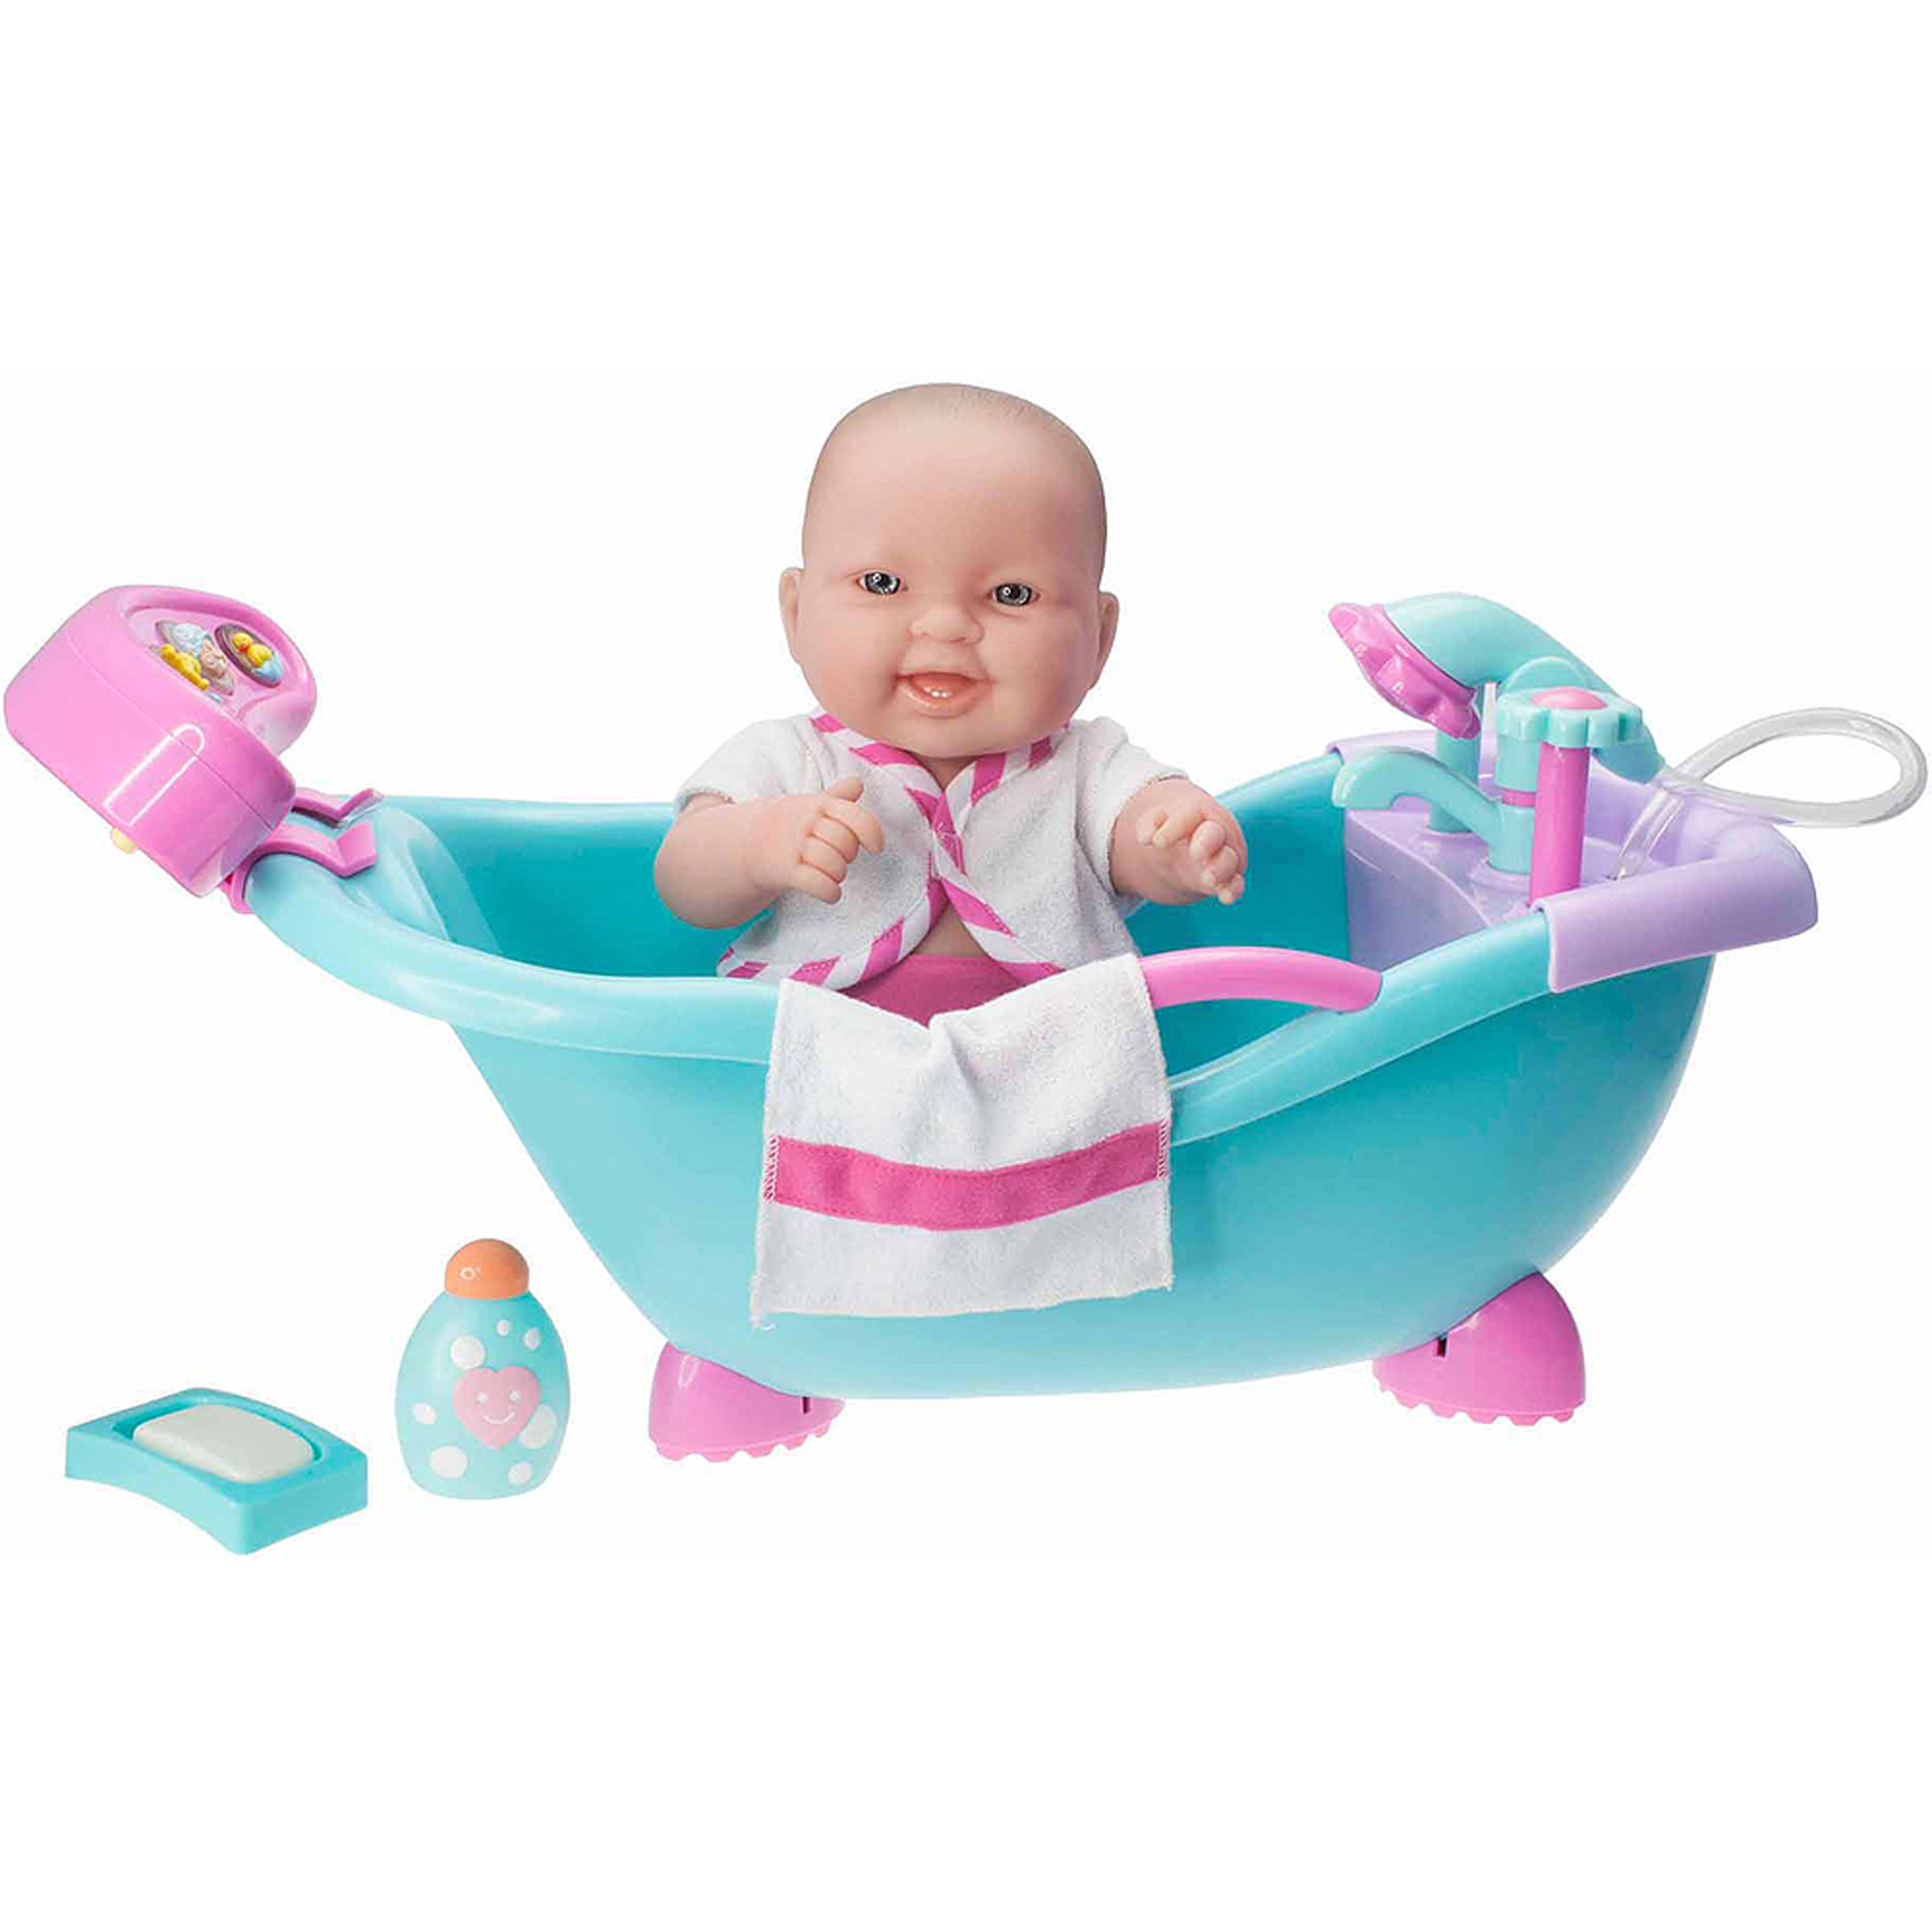 "Lots to Love Babies Electronic Sounds and Working Bath with 14"" All-Vinyl Doll and Accessories"